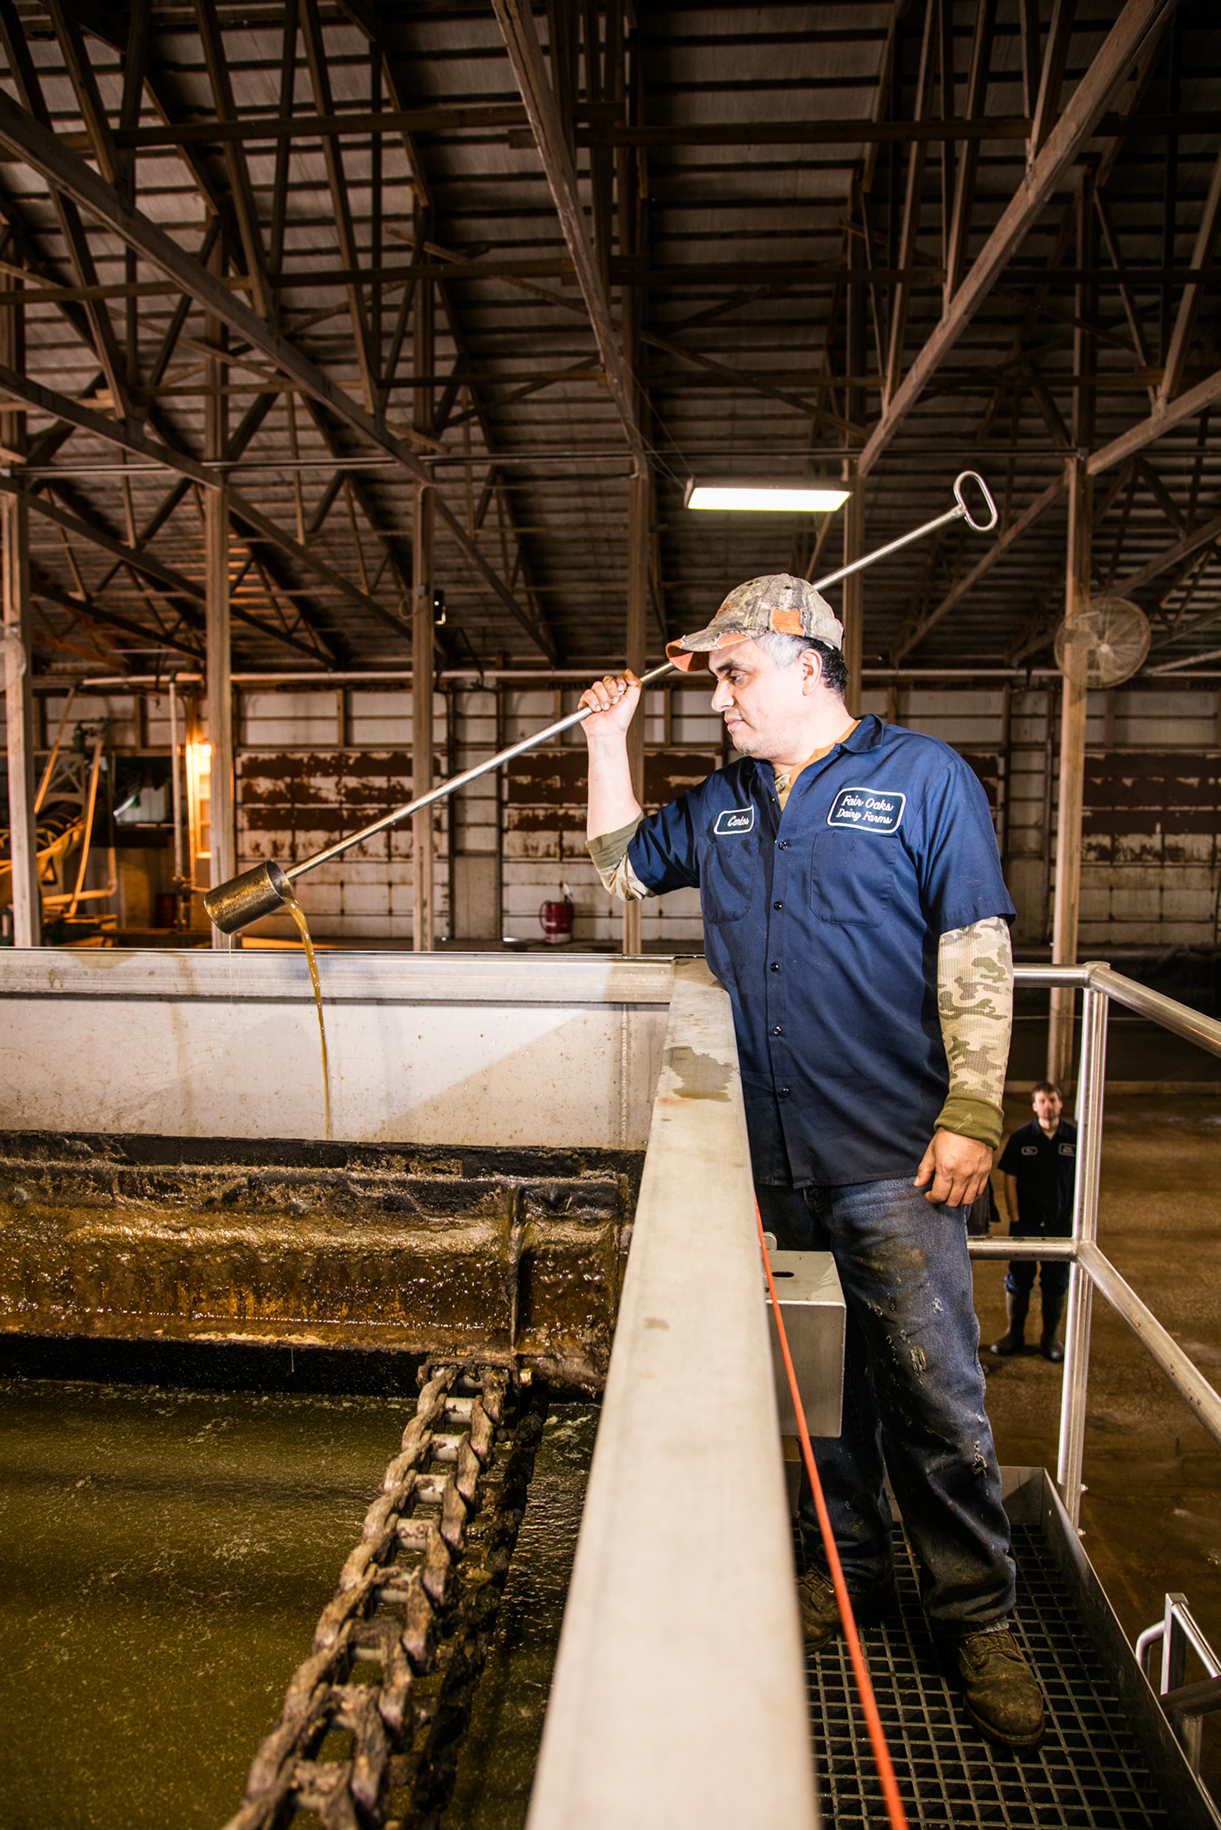 Carlos Hernandez, a plant operator, checks water clarity in a seperation tank at Fair Oaks Dairy in Fair Oaks, Ind., on January 7, 2016.